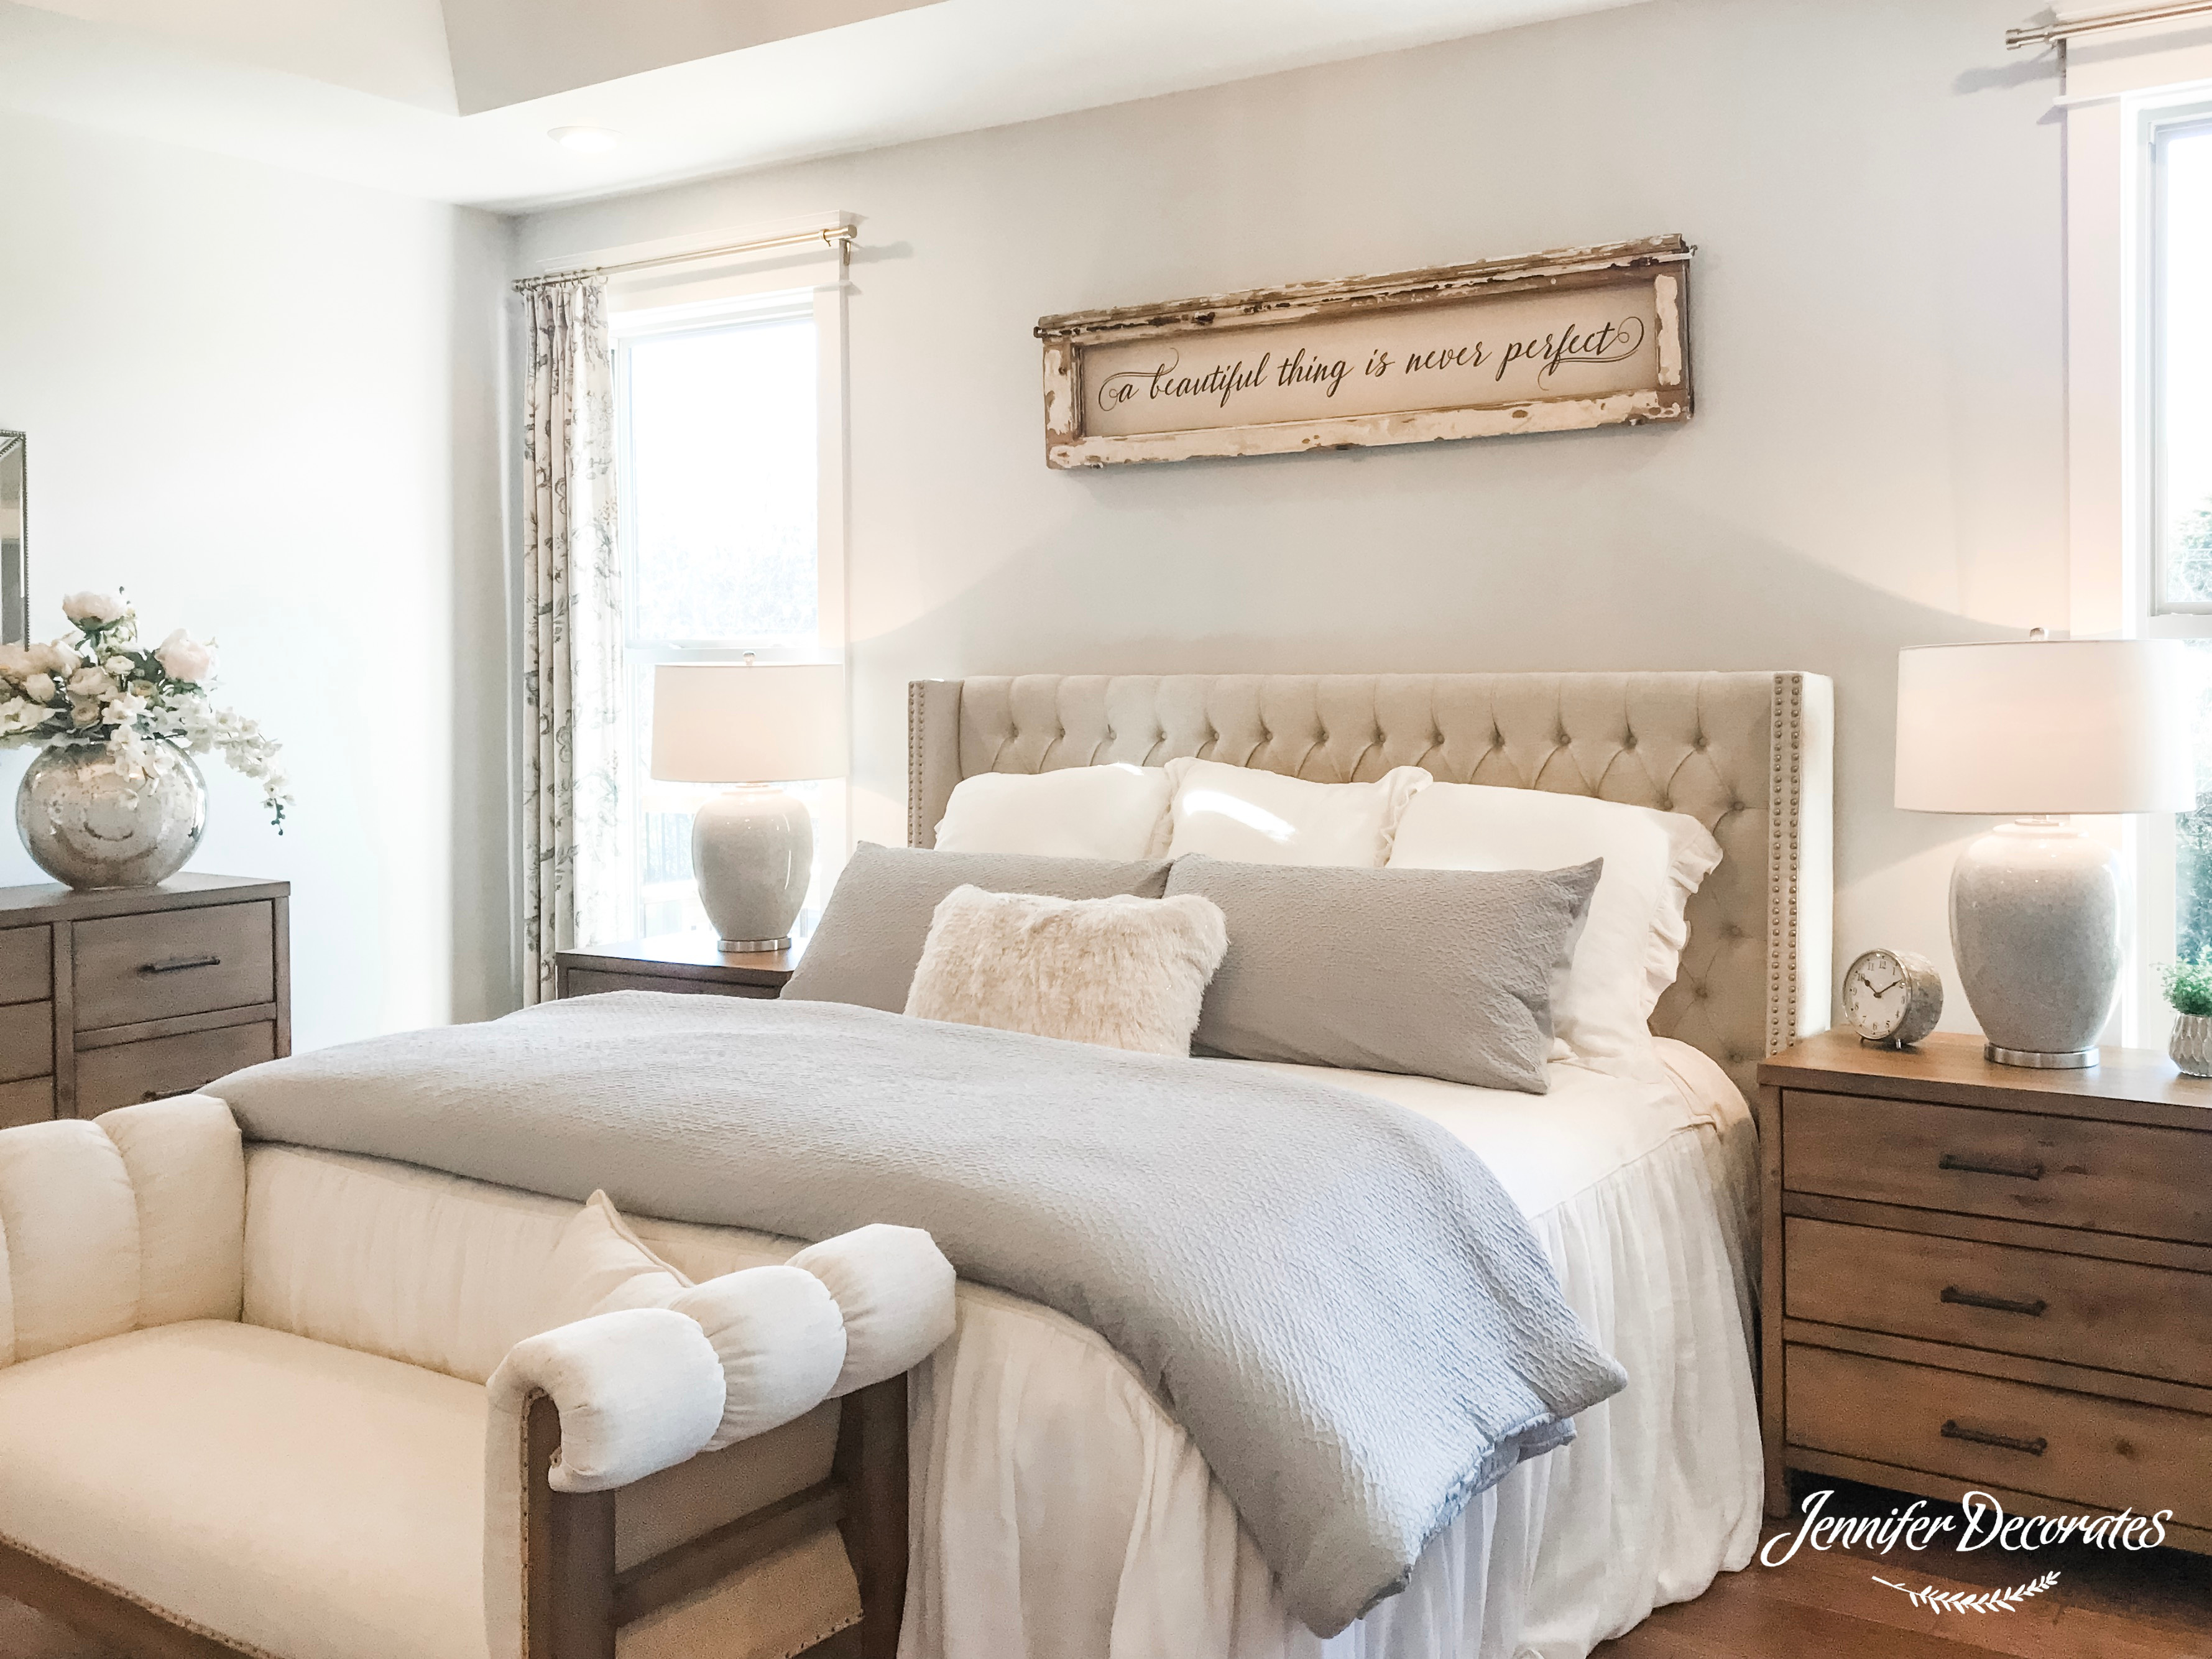 Bedroom decorating ideas consider